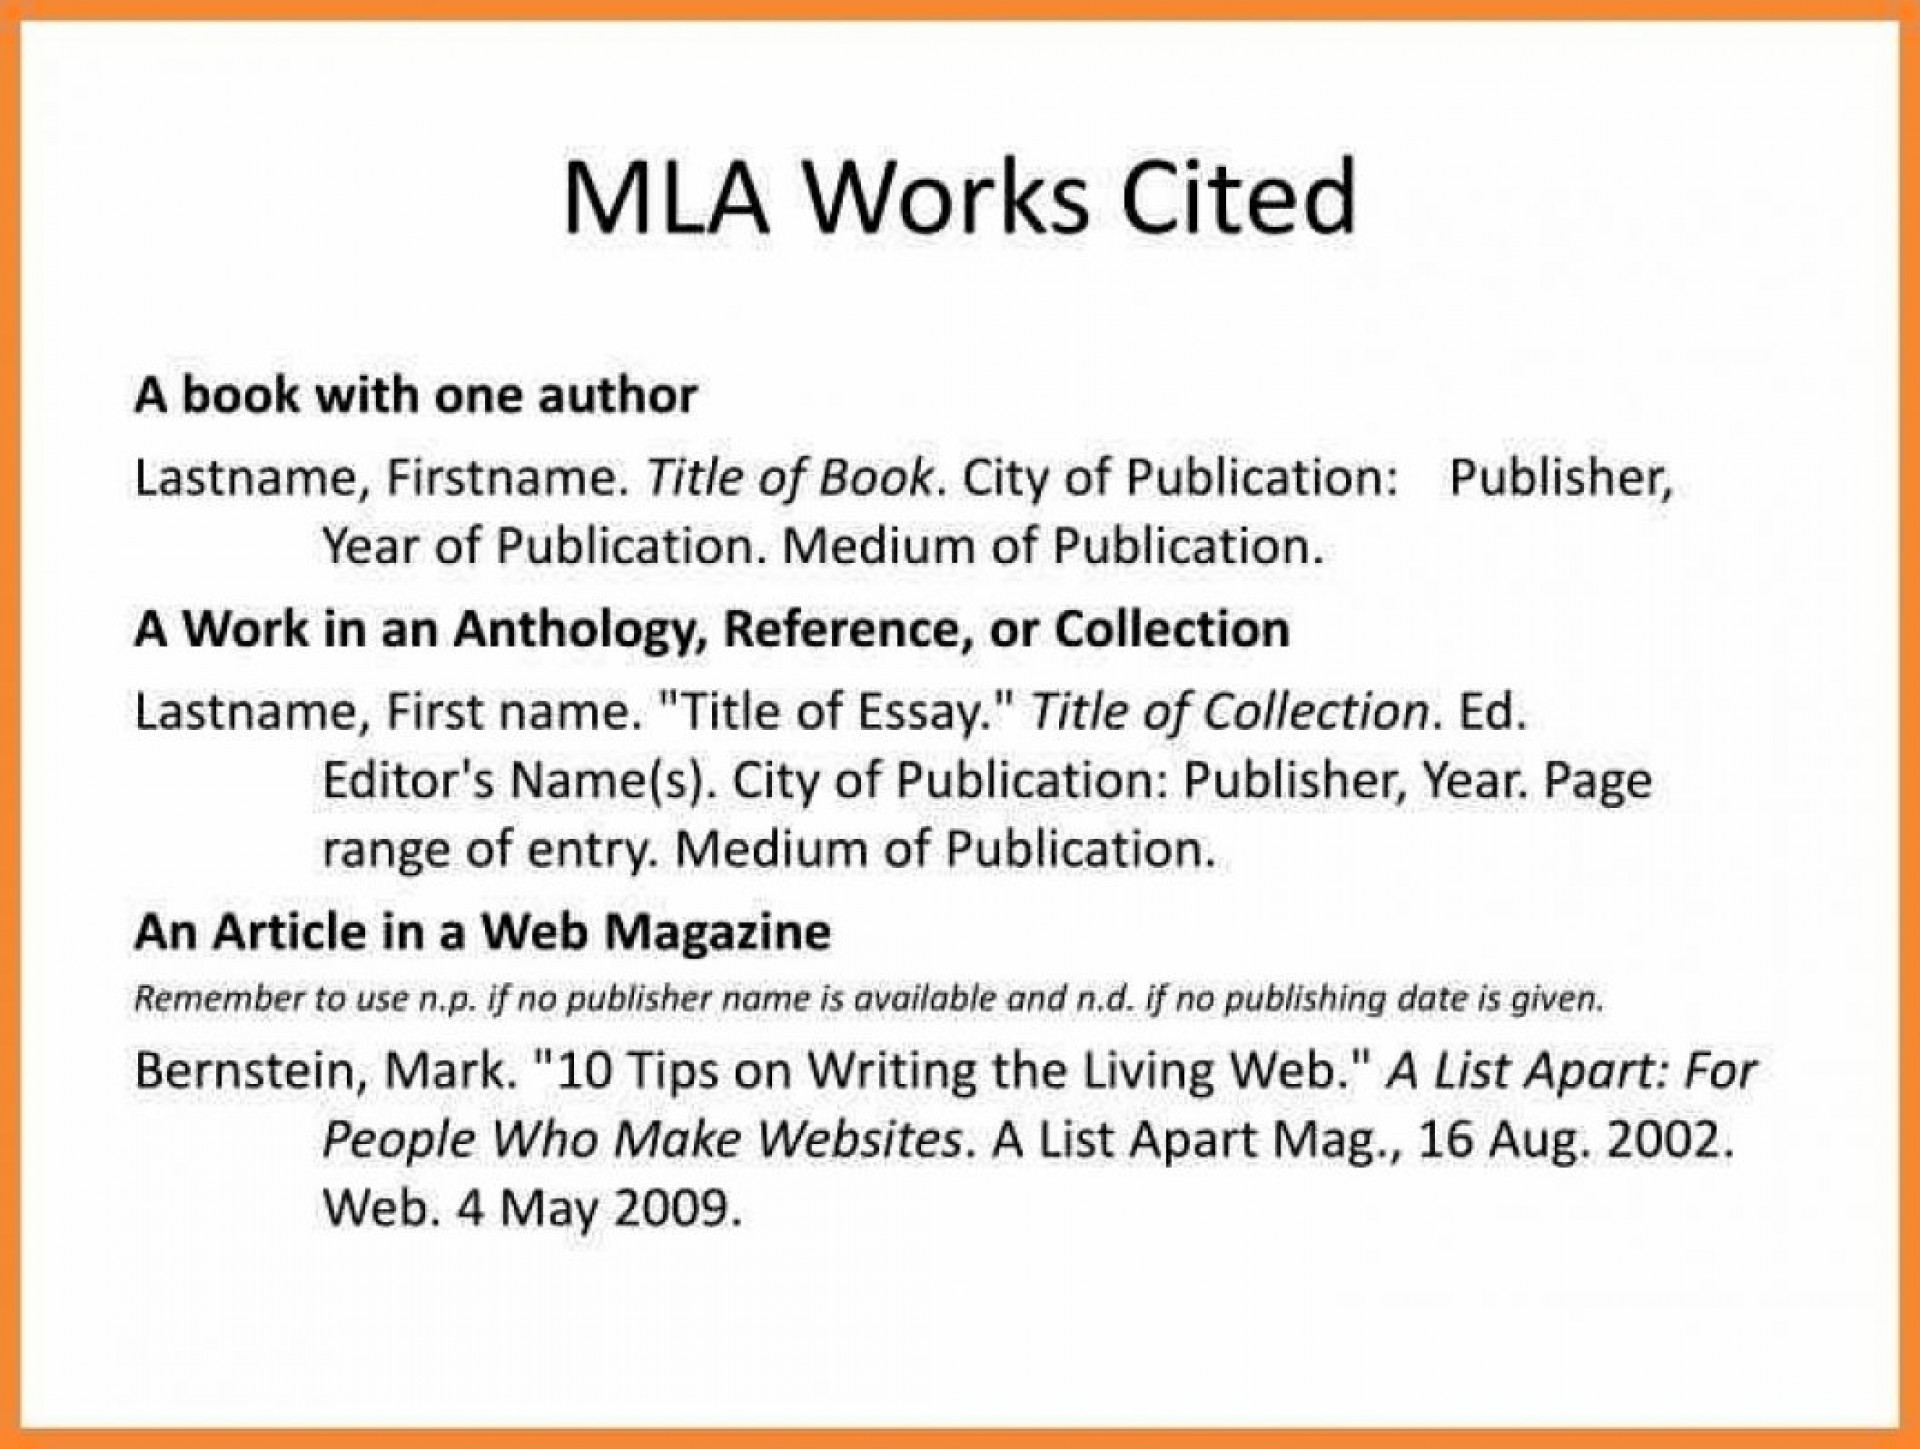 024 Research Paper Mla Works Cited Citation Example Citations In Format Work N Well Meanwhile Formats For Unusual 1920